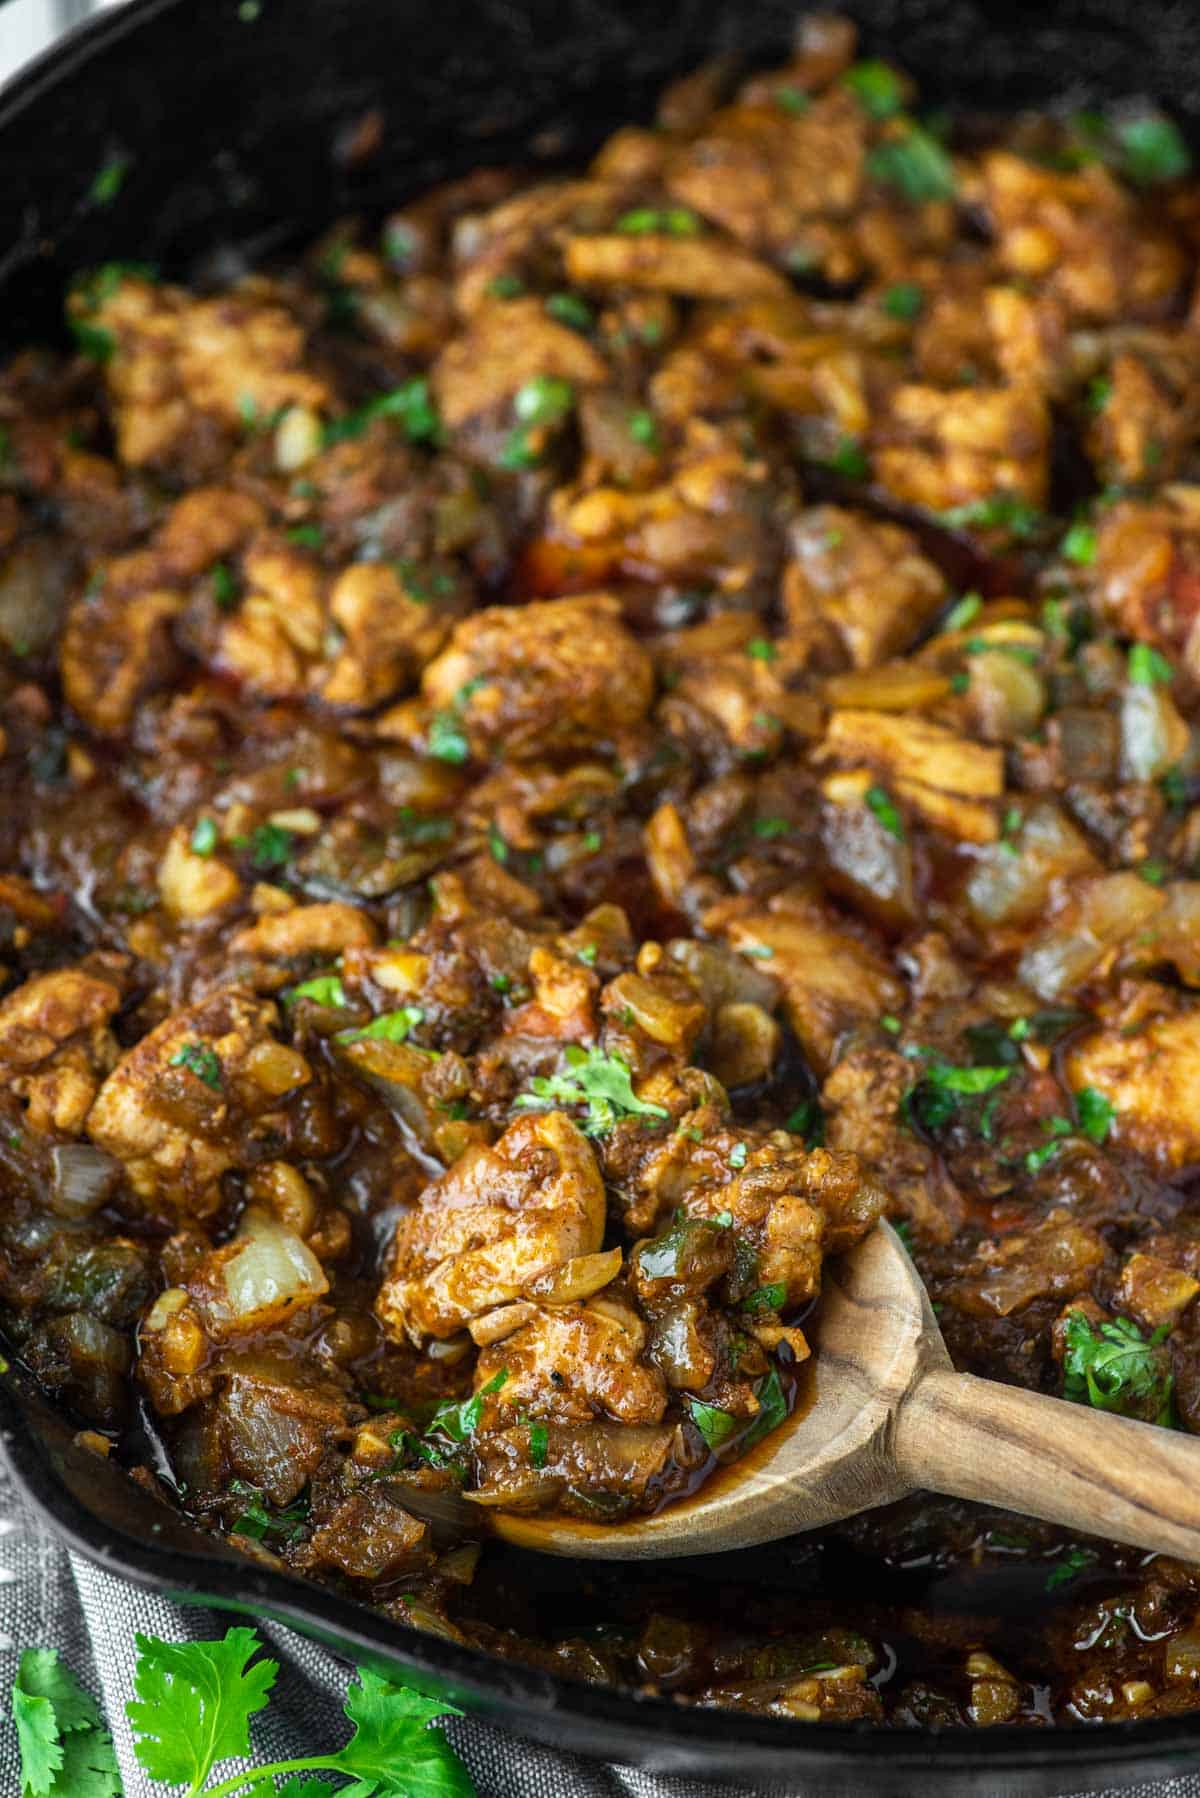 wooden spoon dipped in skillet with chicken bhuna